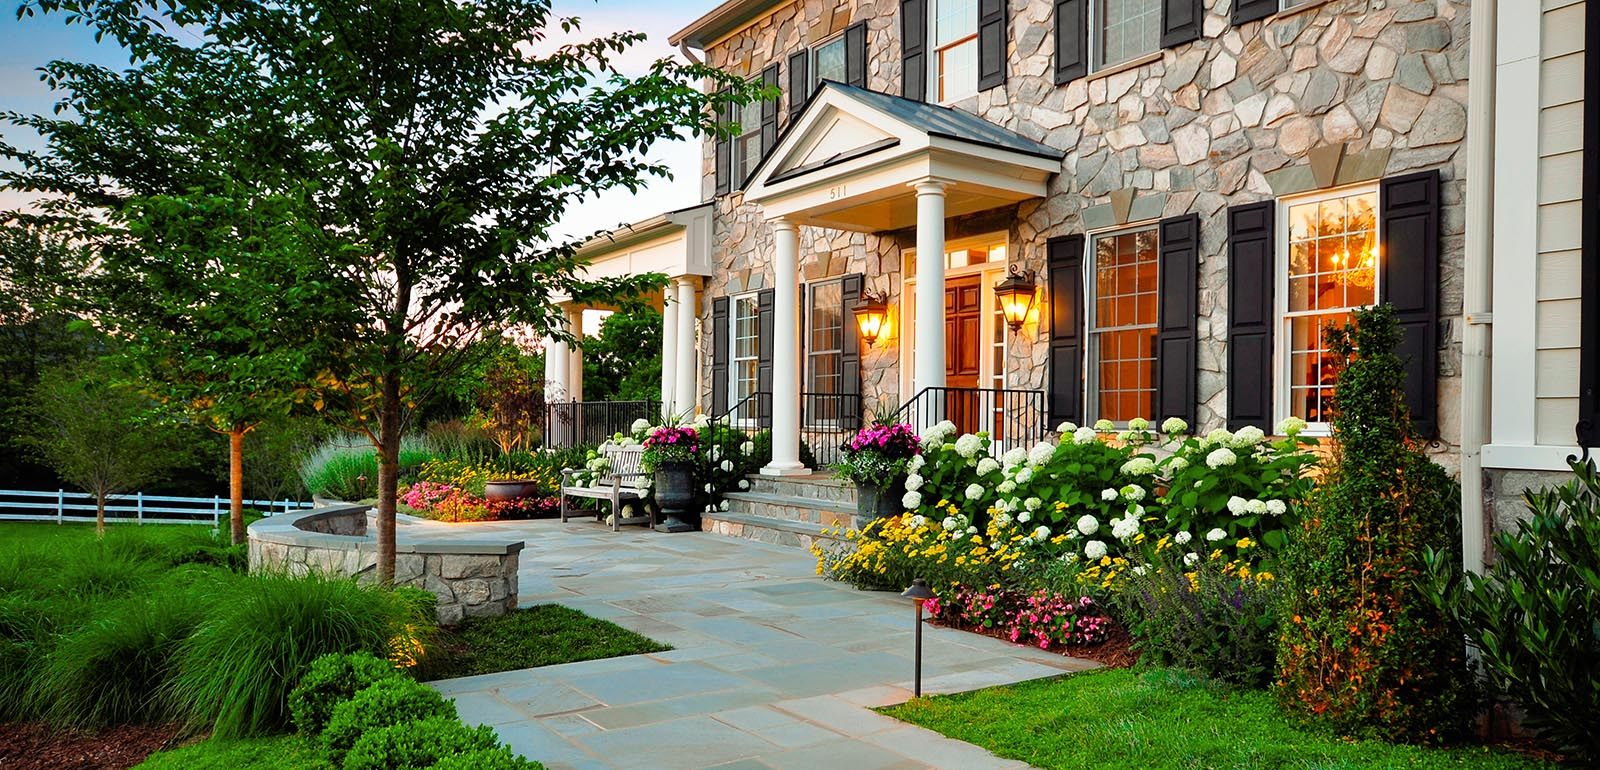 Amazing Design Of The Front Yard Landscape Ideas With White Flower And Purple Flower Ideas In Front Of The House